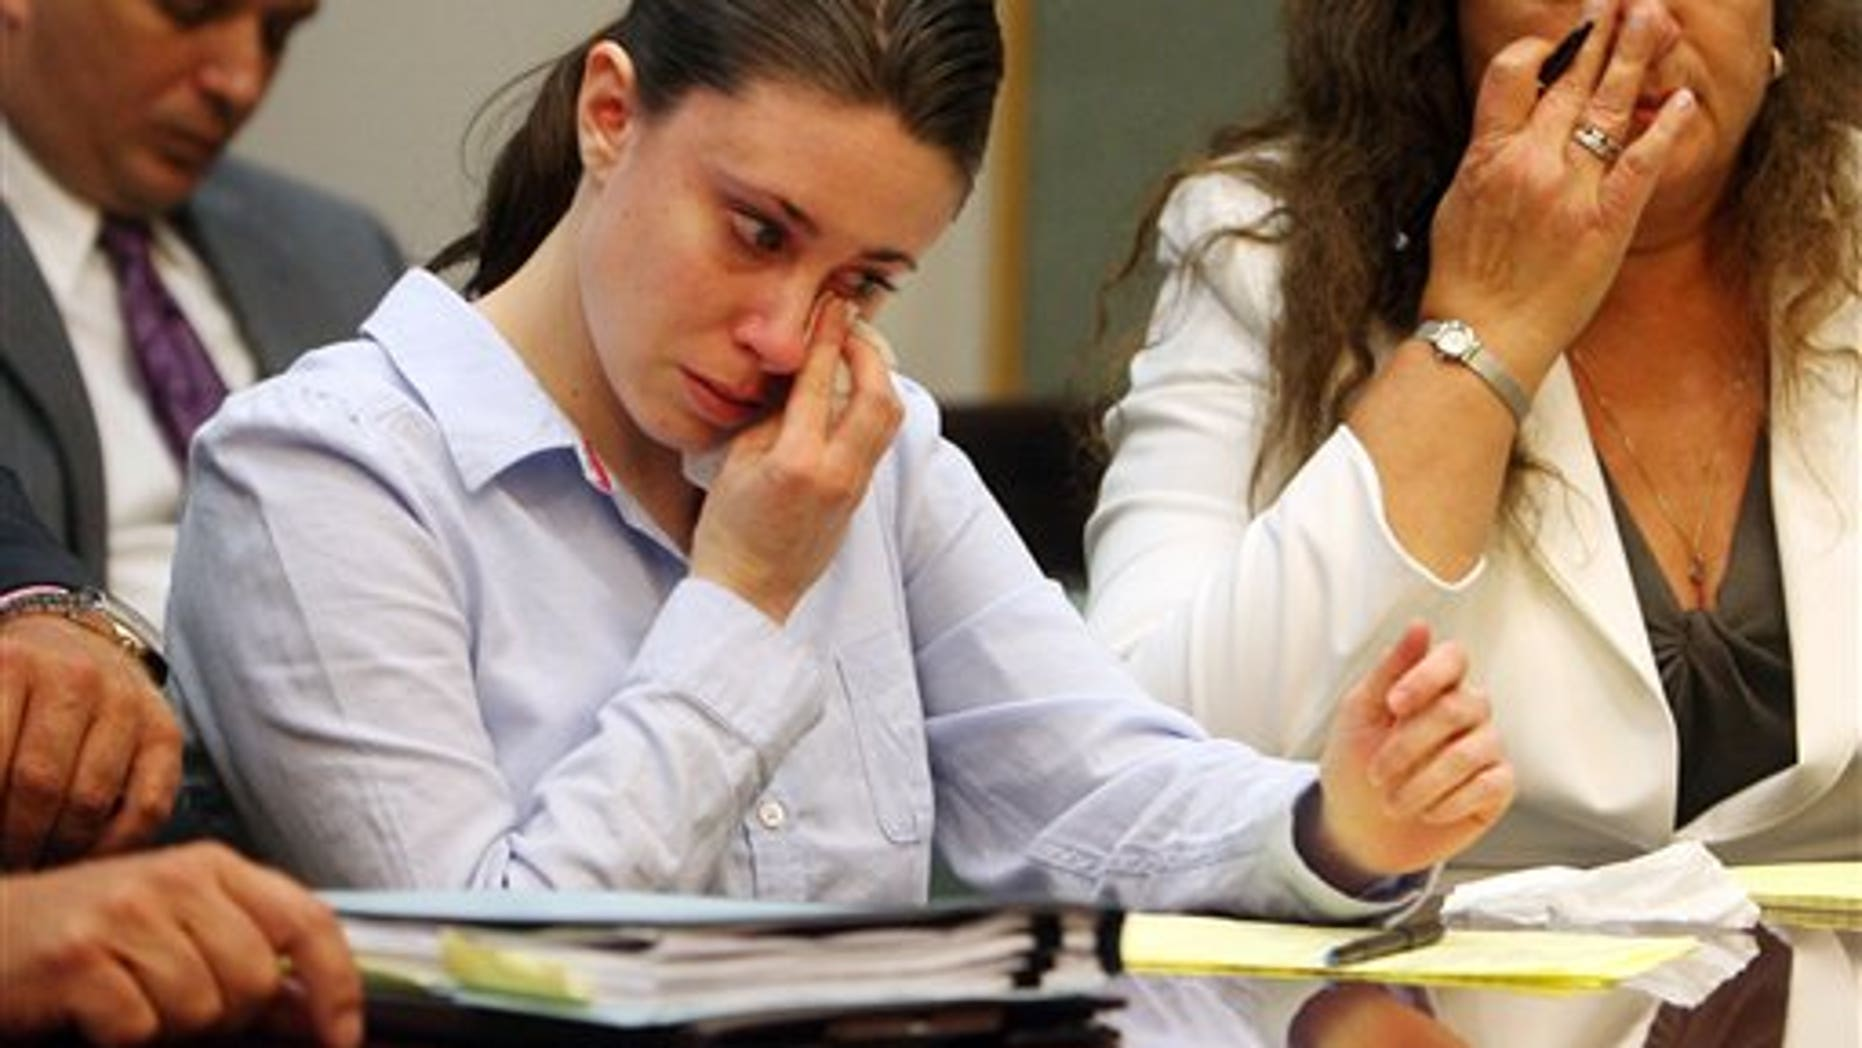 Aug. 21, 2009: Casey Anthony wipes tears from her eyes after seeing her father George Anthony testify during a court hearing in Orlando, Fla.